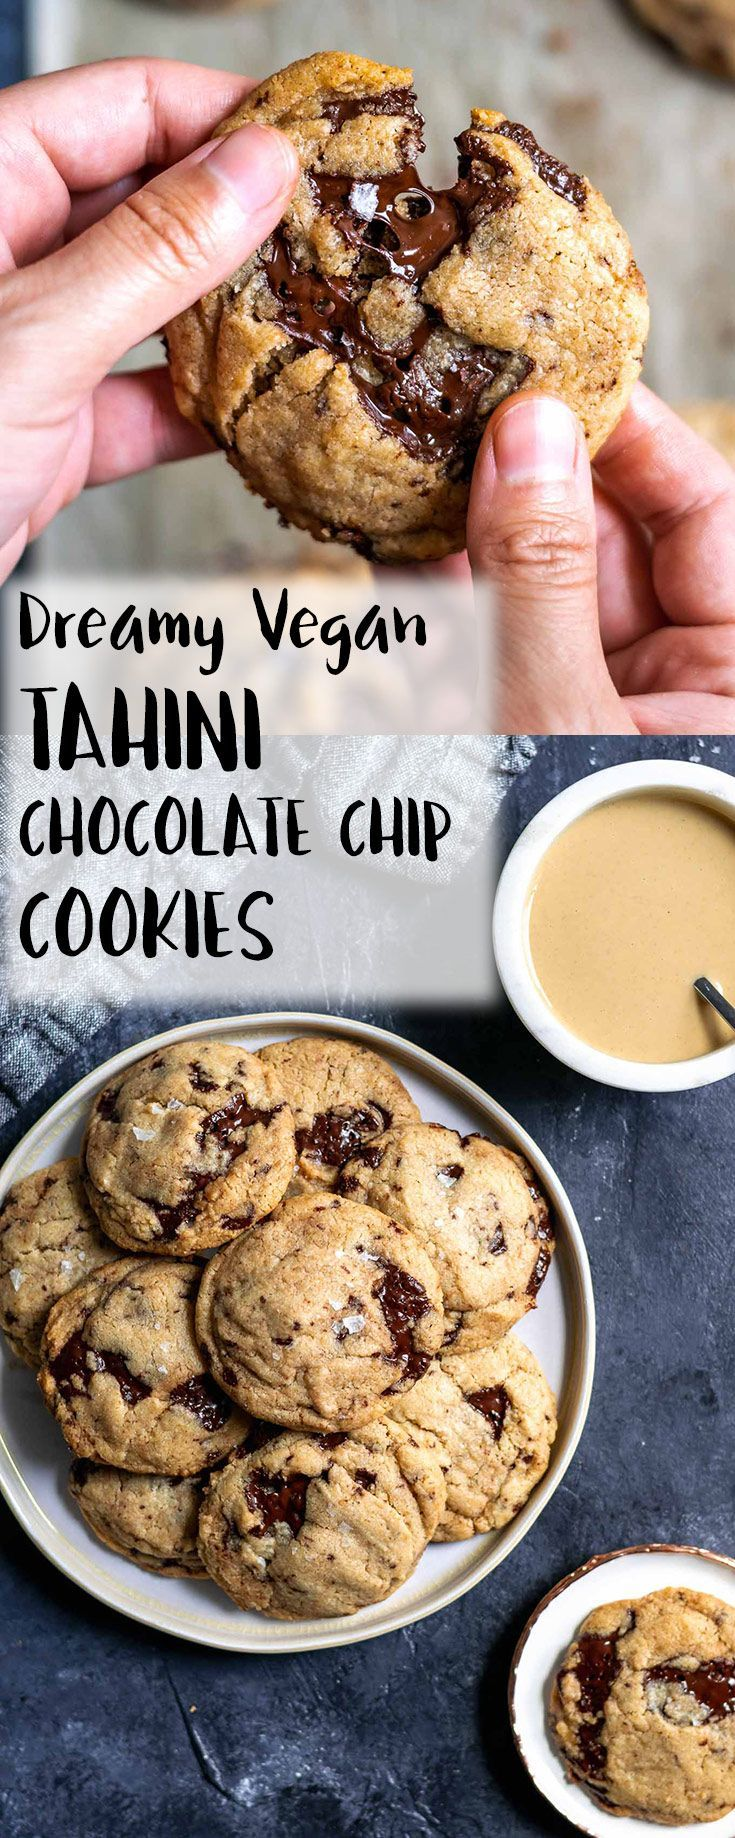 Chewy Vegan Tahini Chocolate Chip Cookies These chewy vegan tahini chocolate chip cookies are laced with chunks of dark chocolate that melt into dreamy puddles in the oven. Sesame paste adds a nice nuttiness, and deepens the bittersweet flavors of the dark chocolate. They're bound to become your new favorite cookie! Vegan Tahini Chocolate Chip Cookies These chewy vegan tahini chocolate chip cookies are laced with chunks of dark chocolate that melt into dreamy puddles in the oven. Sesame paste adds a nice nuttiness, and deepens the bittersweet flavors of the dark chocolate. They're bound to become your new favorite cookie! | These chewy vegan tah...